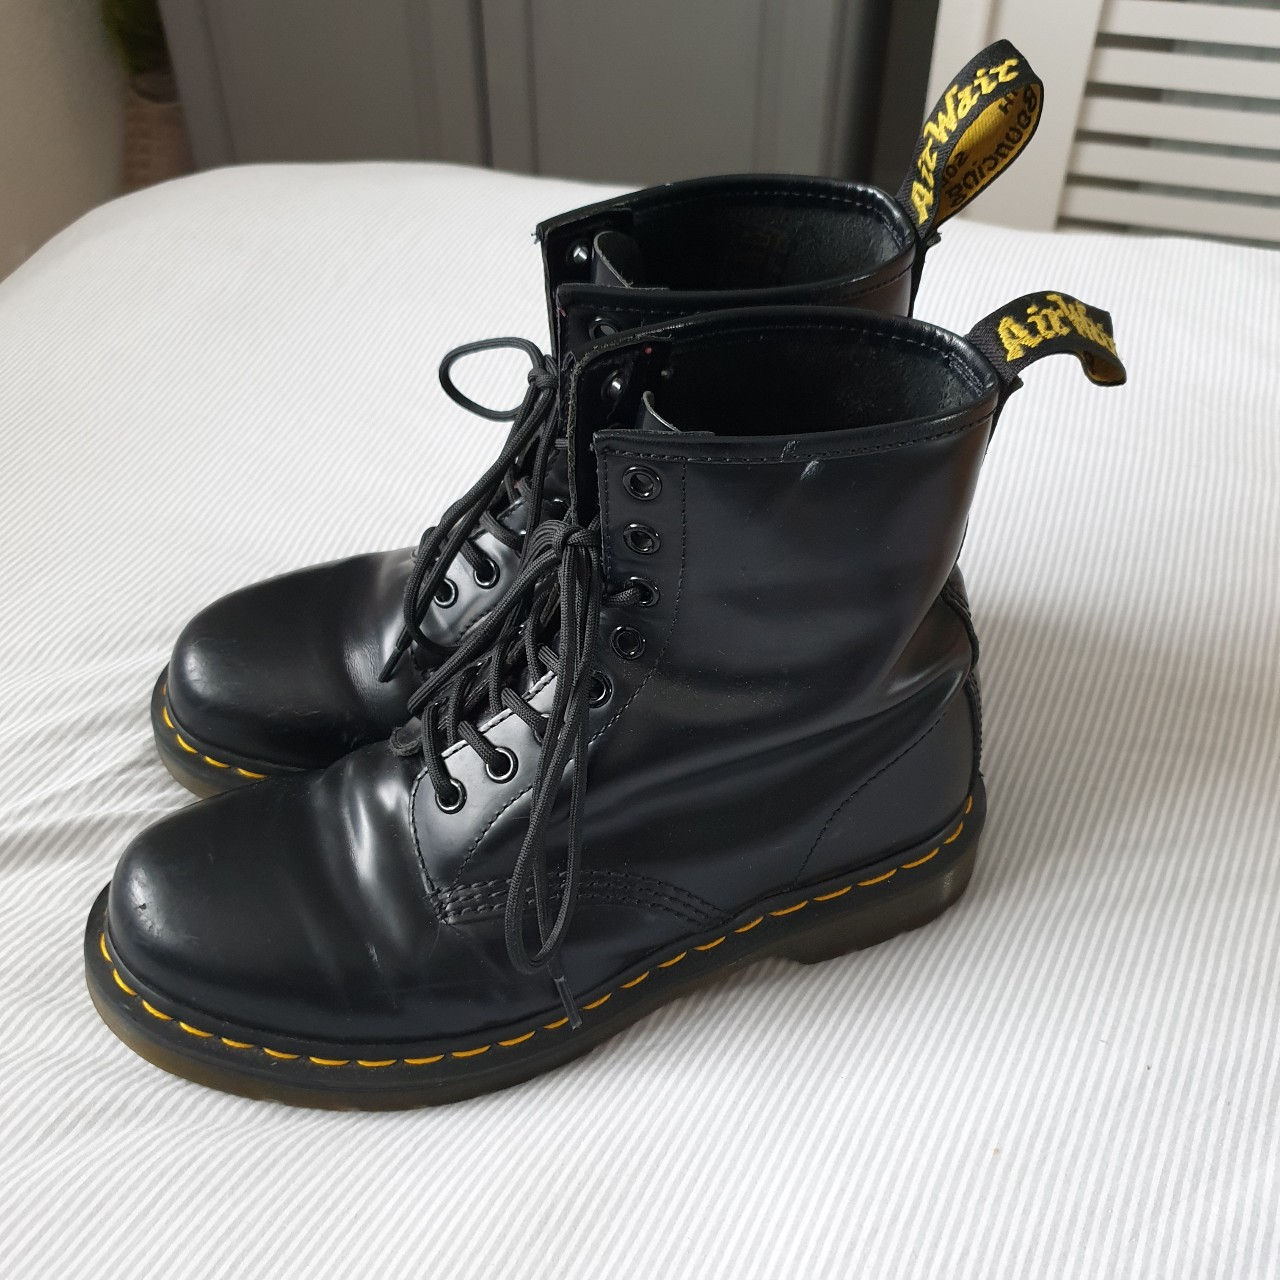 used dr martens boots Dr Martens Boots